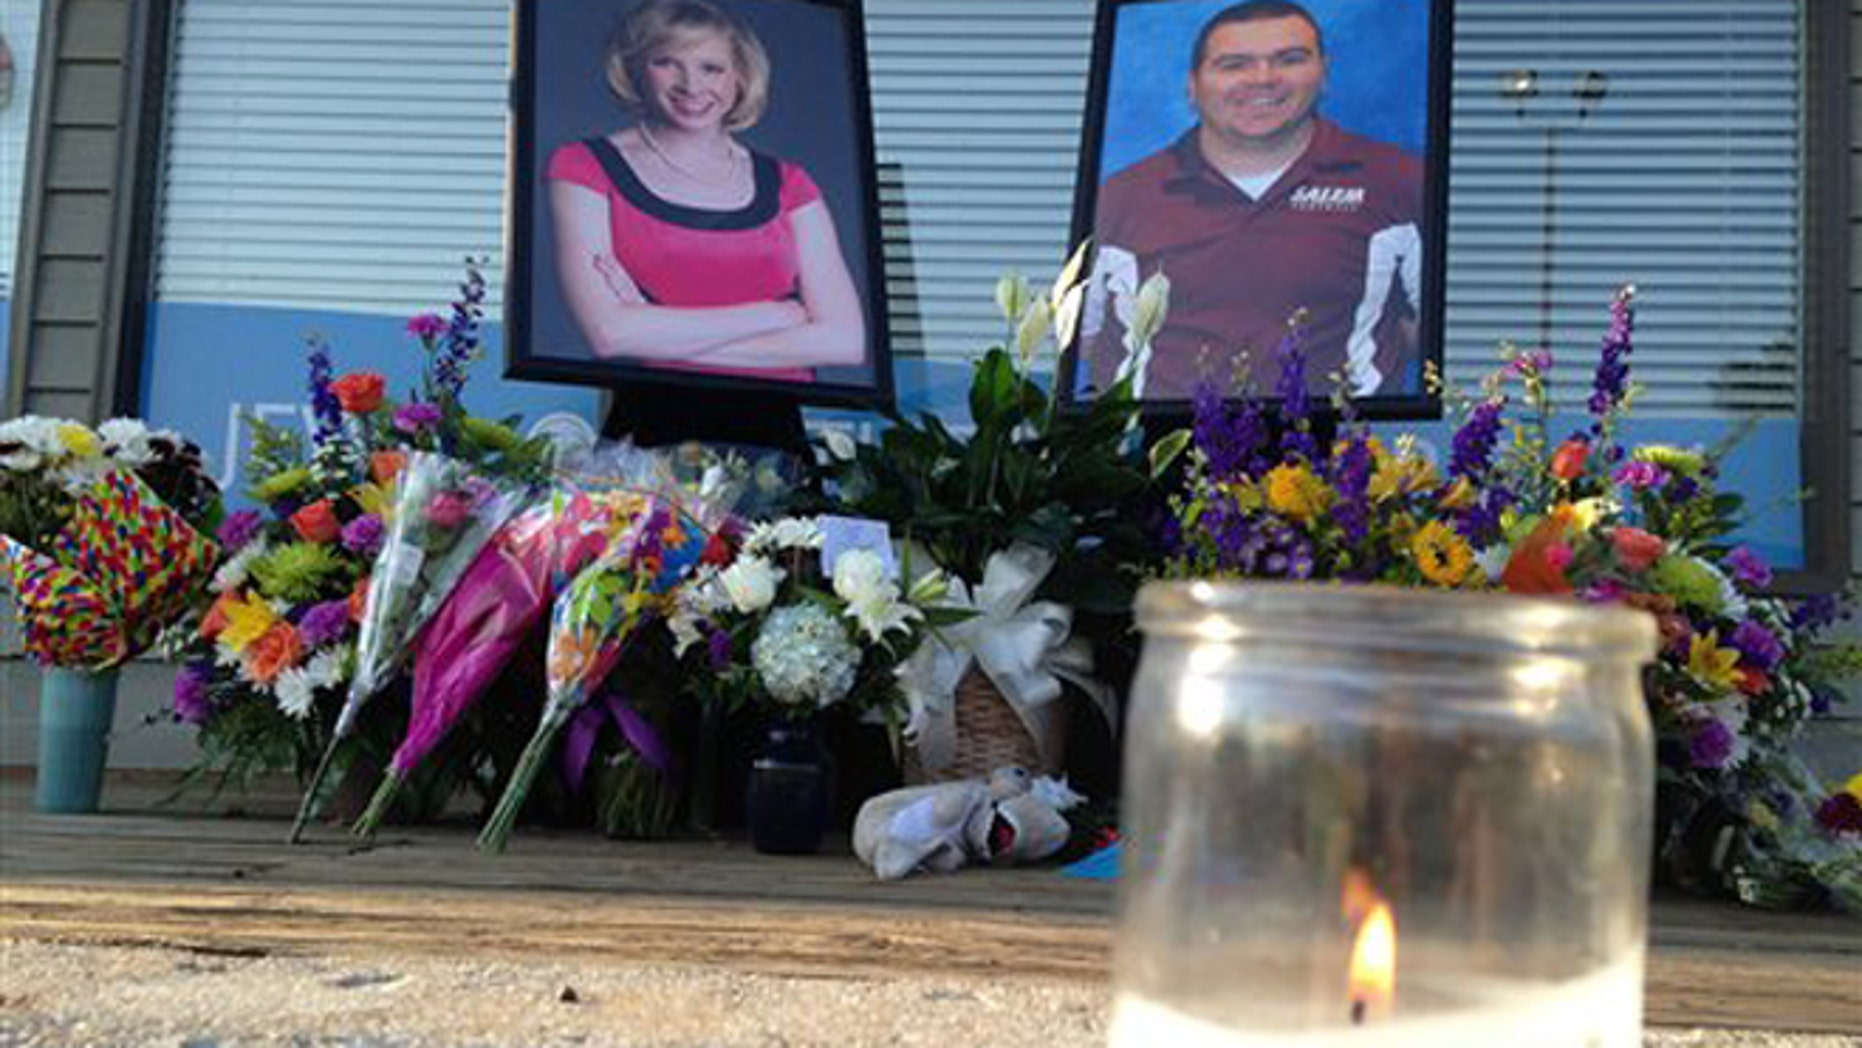 Aug. 28, 2015: A candle burns in front of a memorial for two slain journalists at Bridgewater Plaza in Moneta, Va.. The shopping center where the two were killed during a live television broadcast was reopening Friday for the first time since the shootings.